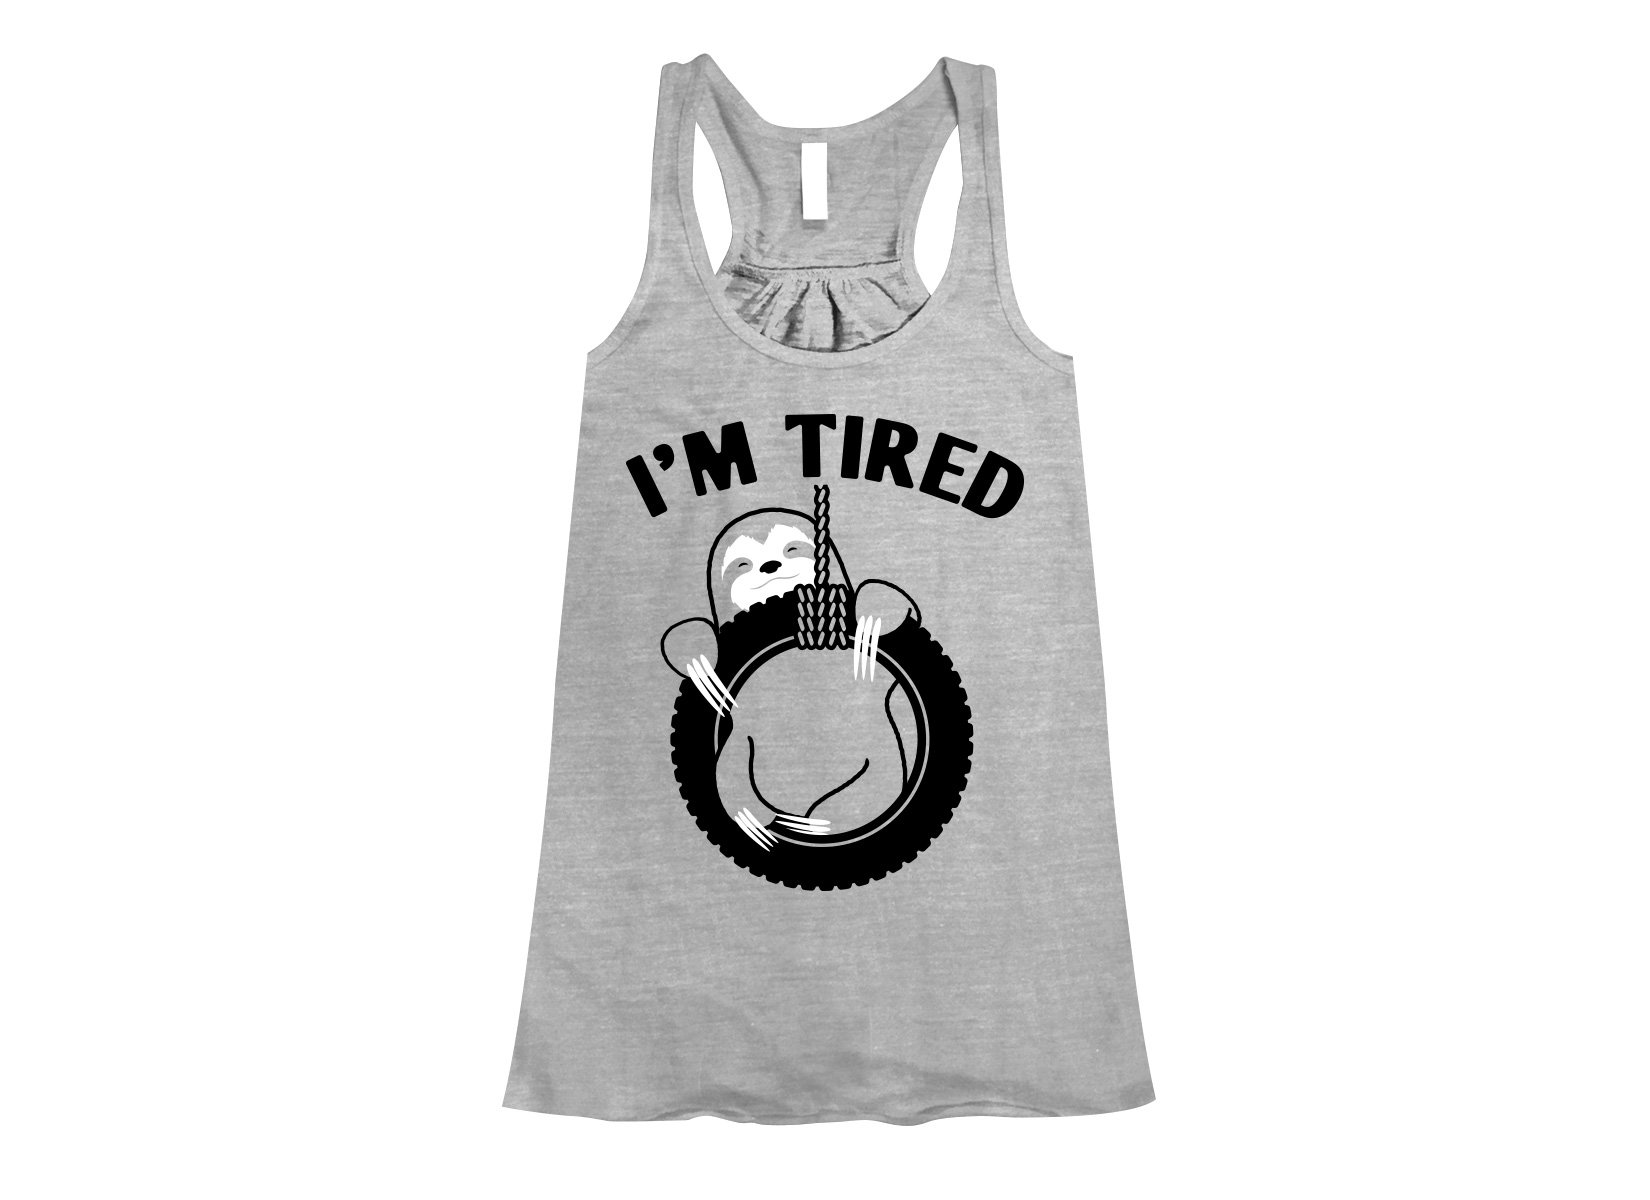 I'm Tired Sloth on Womens Tanks T-Shirt